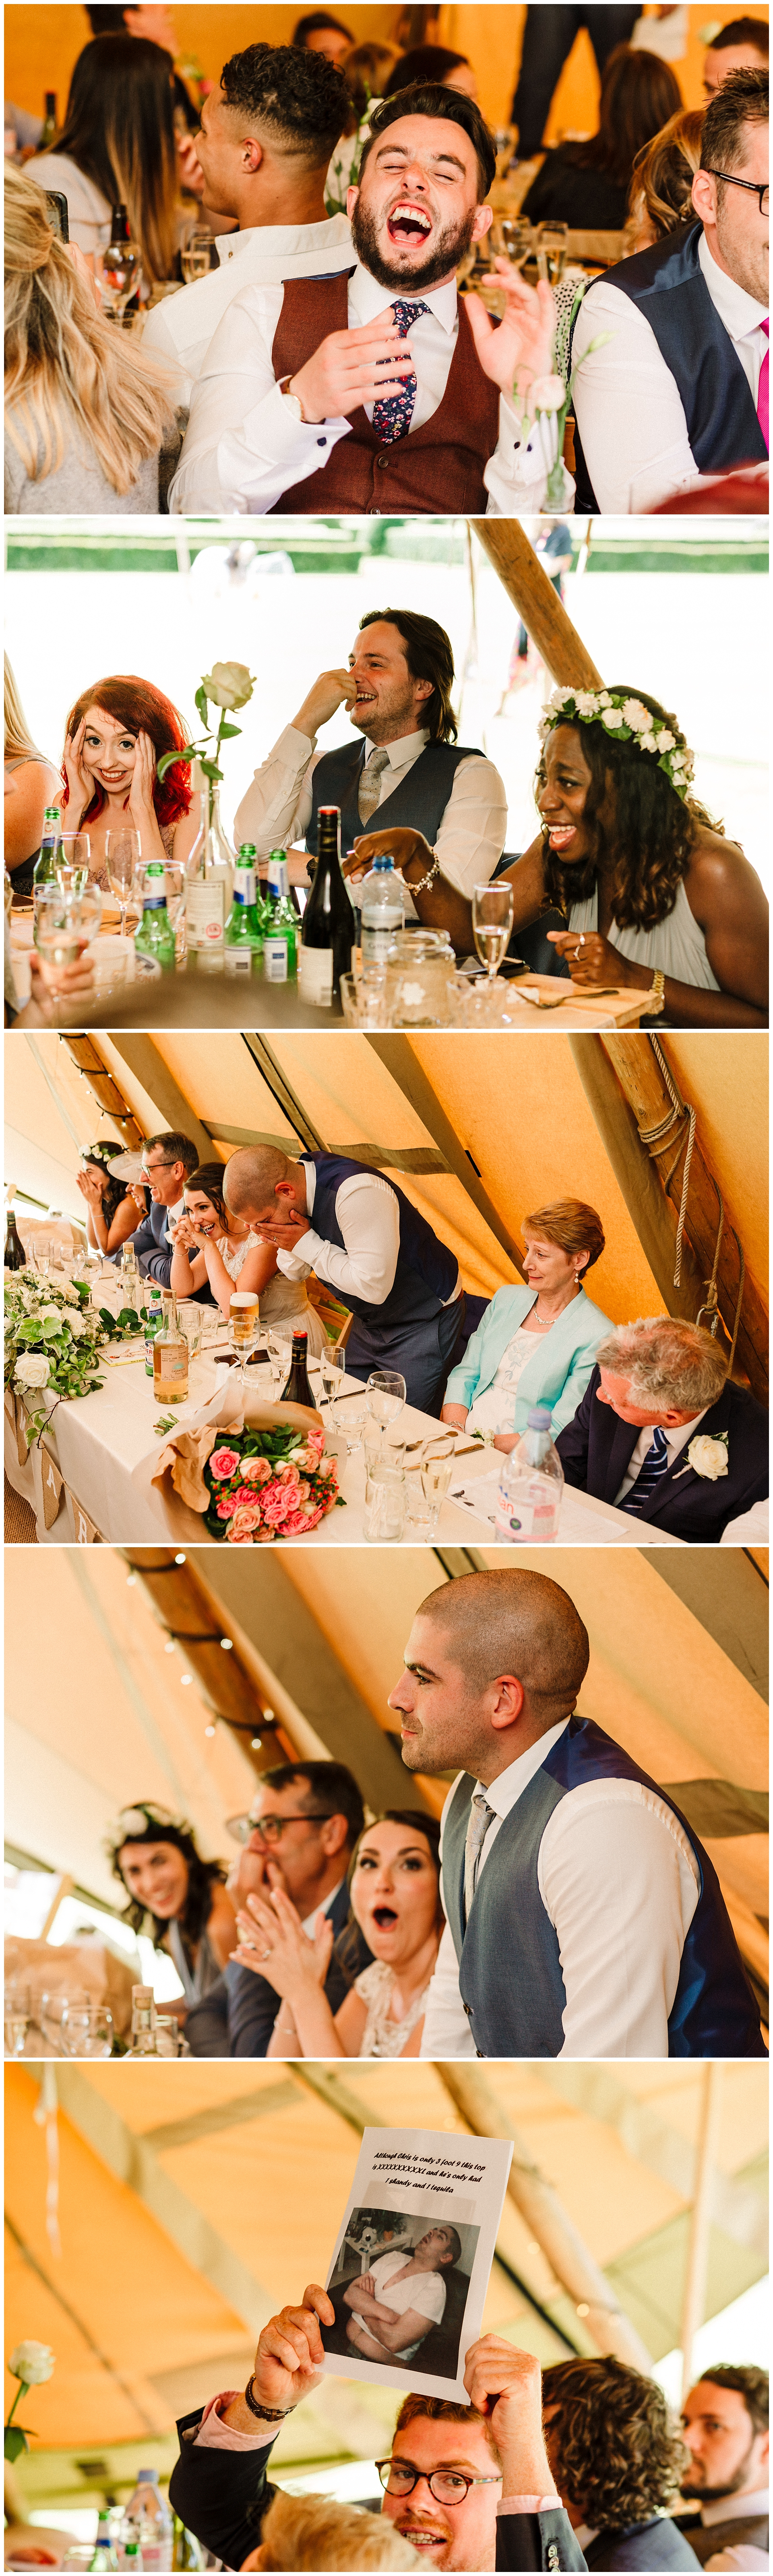 wedding guests laughing at a yorkshire tipi wedding